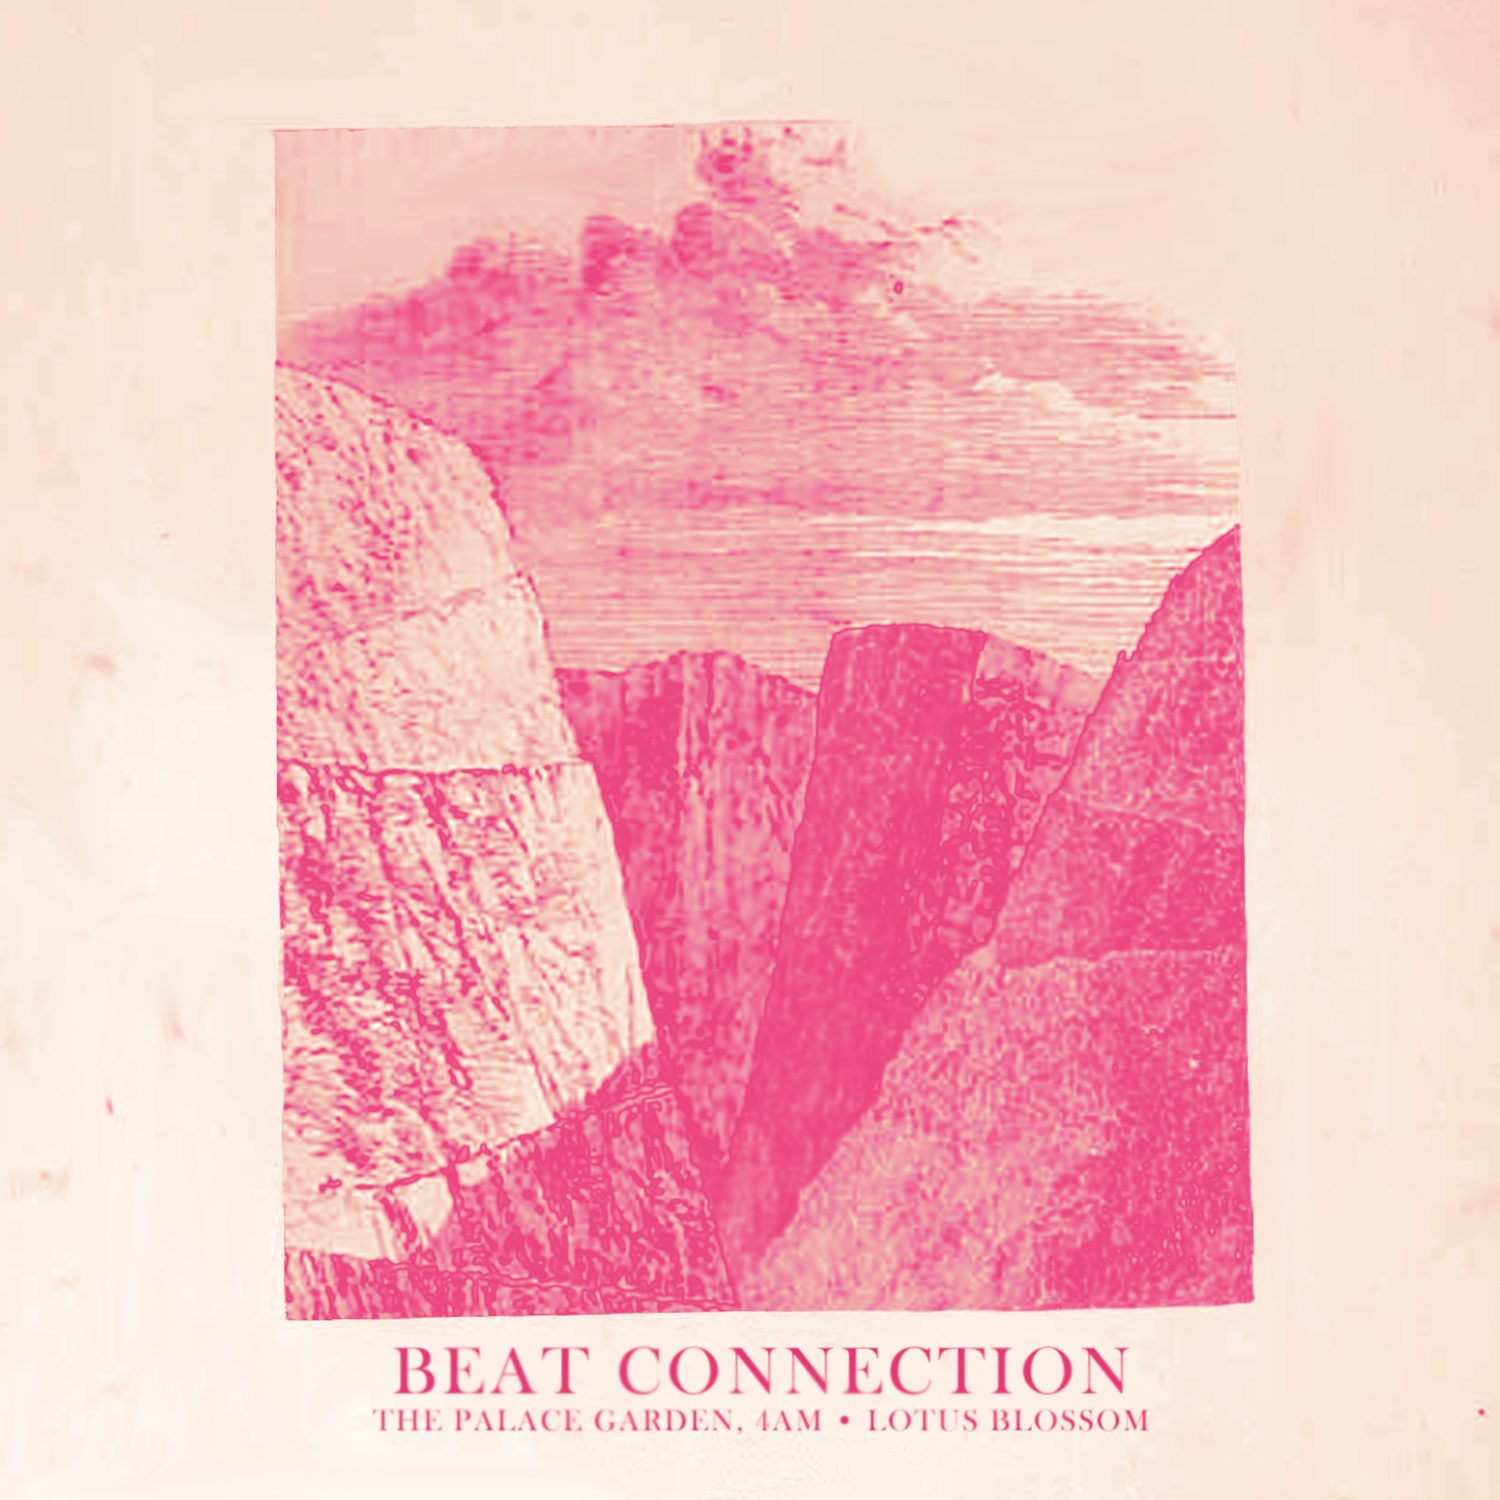 Beat Connection Palace Garden